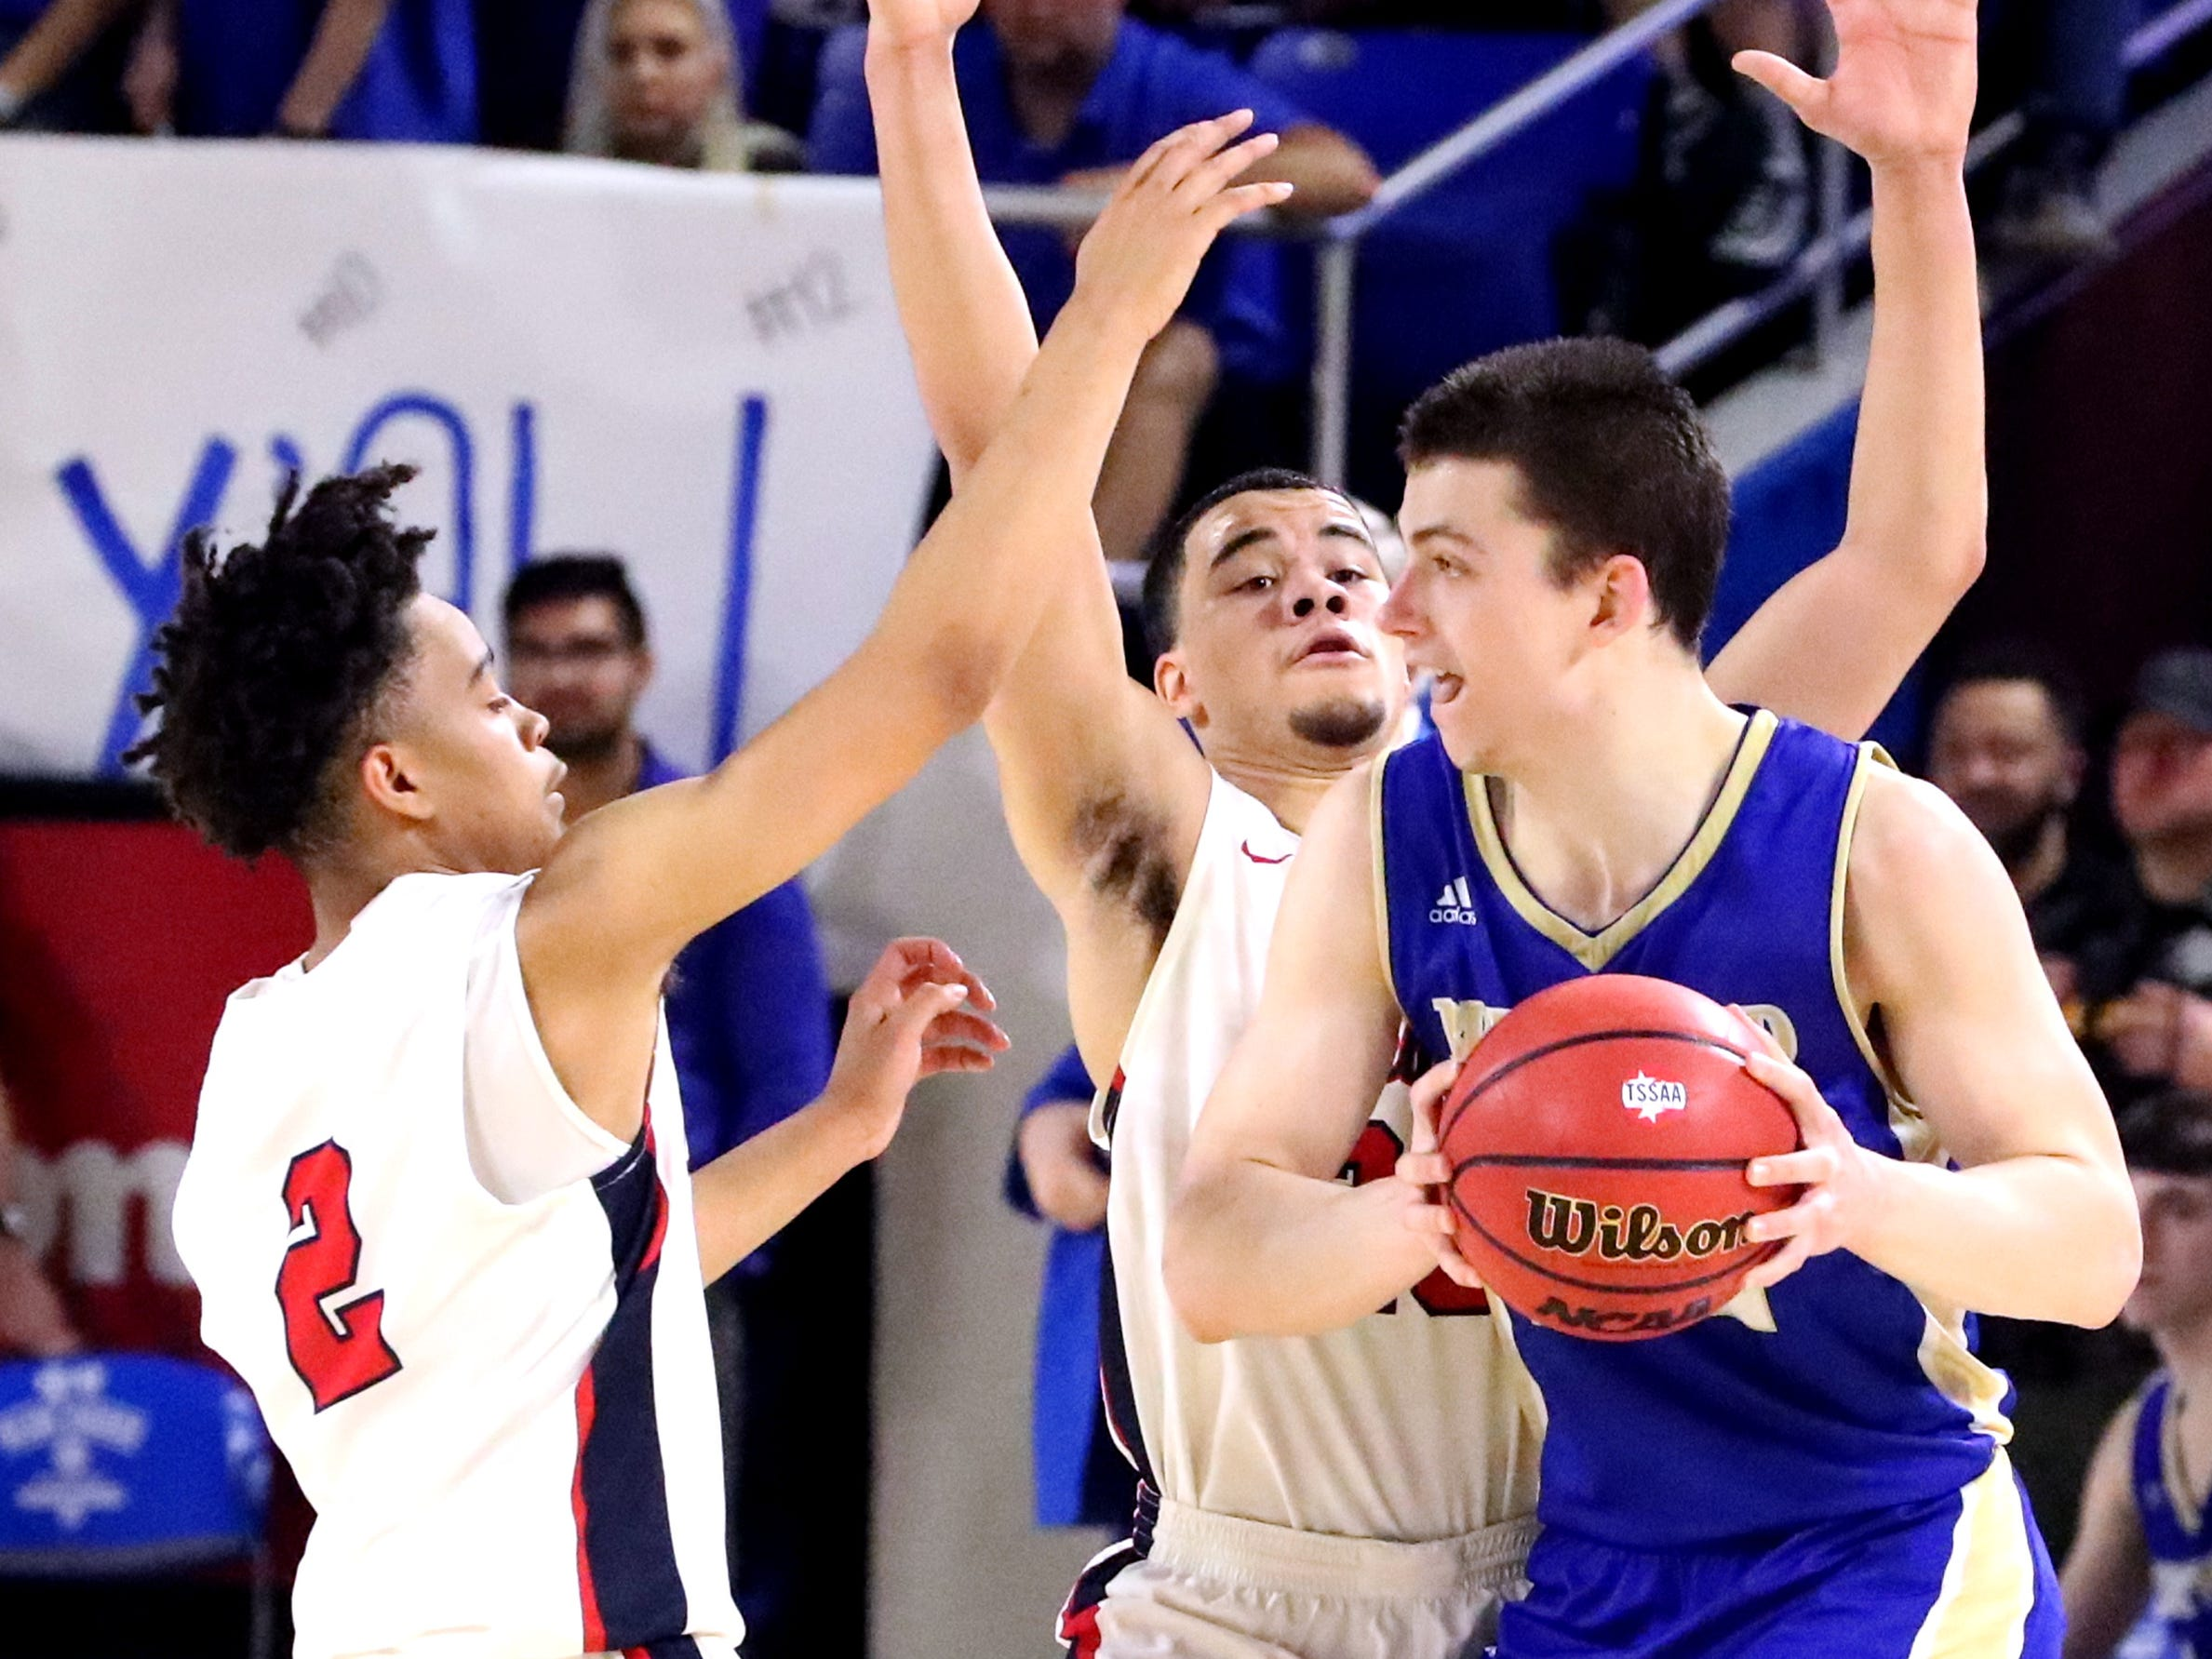 Brentwood's Harry Lackey (22) looks to pass the ball as Oakland's Lonnie Tyler (2) and Lamarius Jackson (25) guard him during the quarterfinal round of the TSSAA Class AAA Boys State Tournament, on Thursday, March 14, 2019, at Murphy Center in Murfreesboro, Tenn.